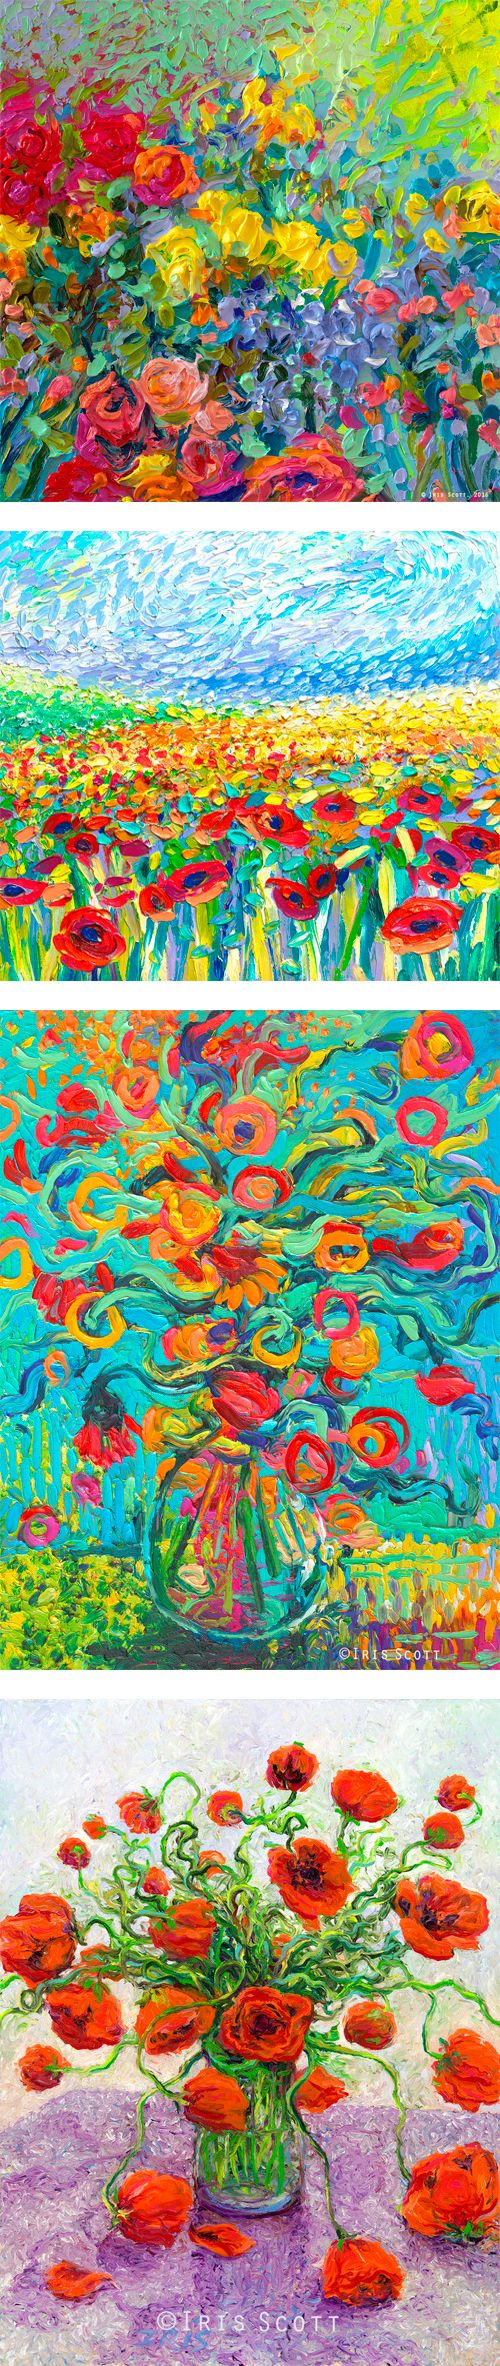 Paintings by Iris Scott. In order top to bottom: 1. Clay Flowers 2. Poppies Study  3. Samara Chica 4. The Color Poppy  Finger painted oils. Originals and prints available at www.IrisScottFineArt.com